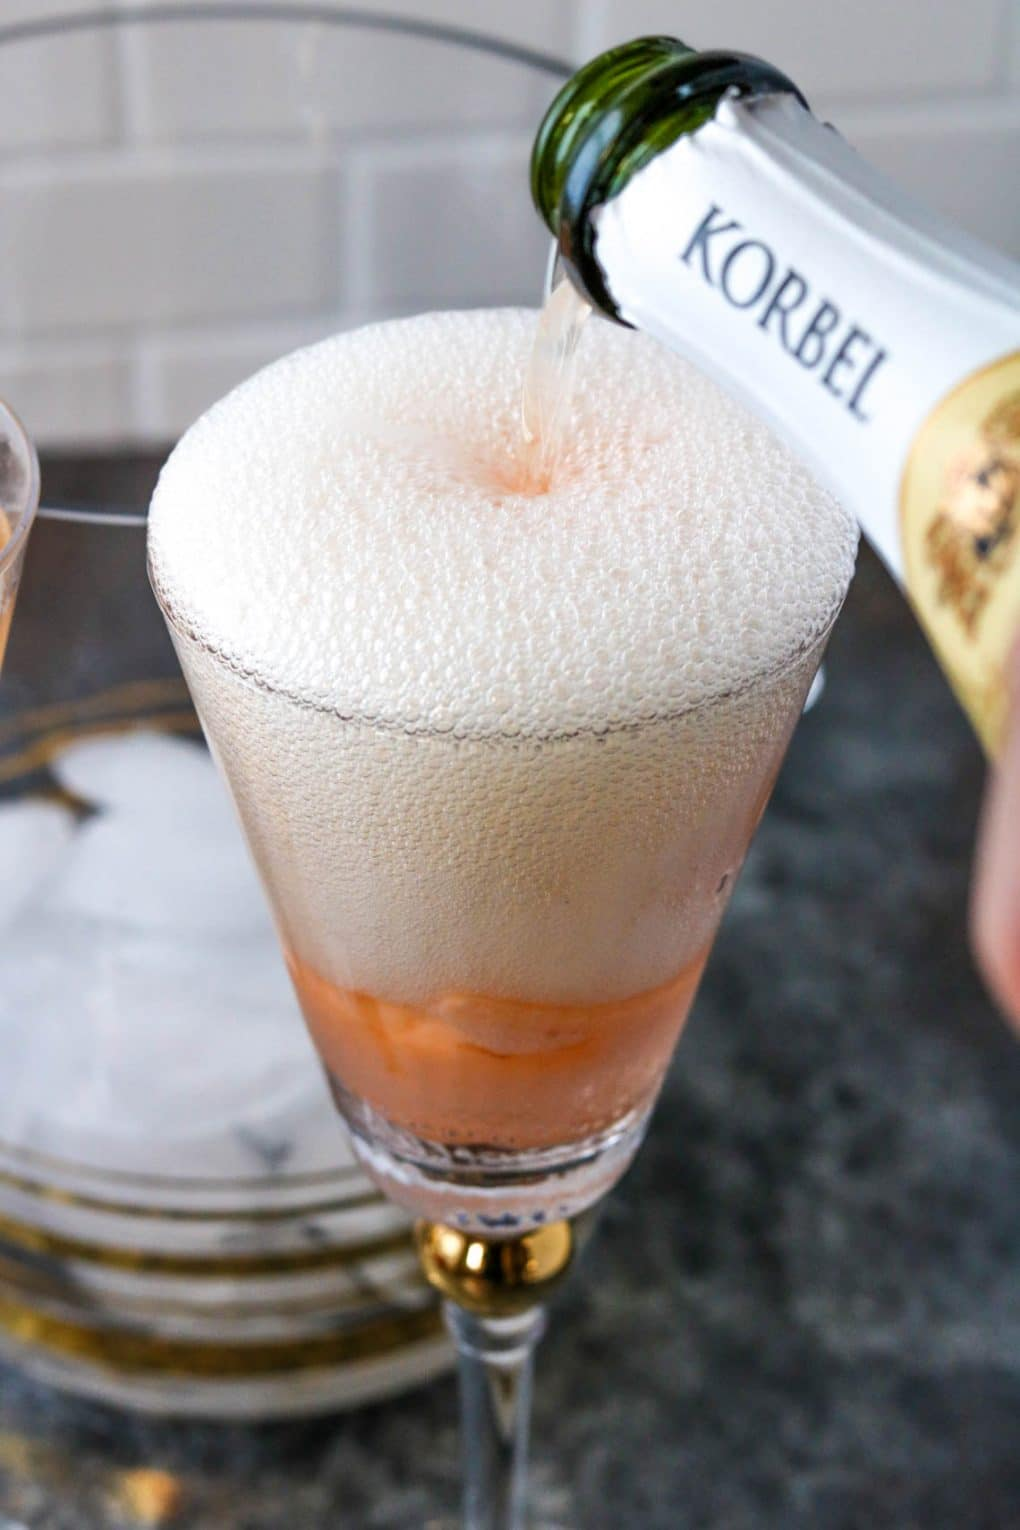 champagne being poured over orange sherbet in a glass